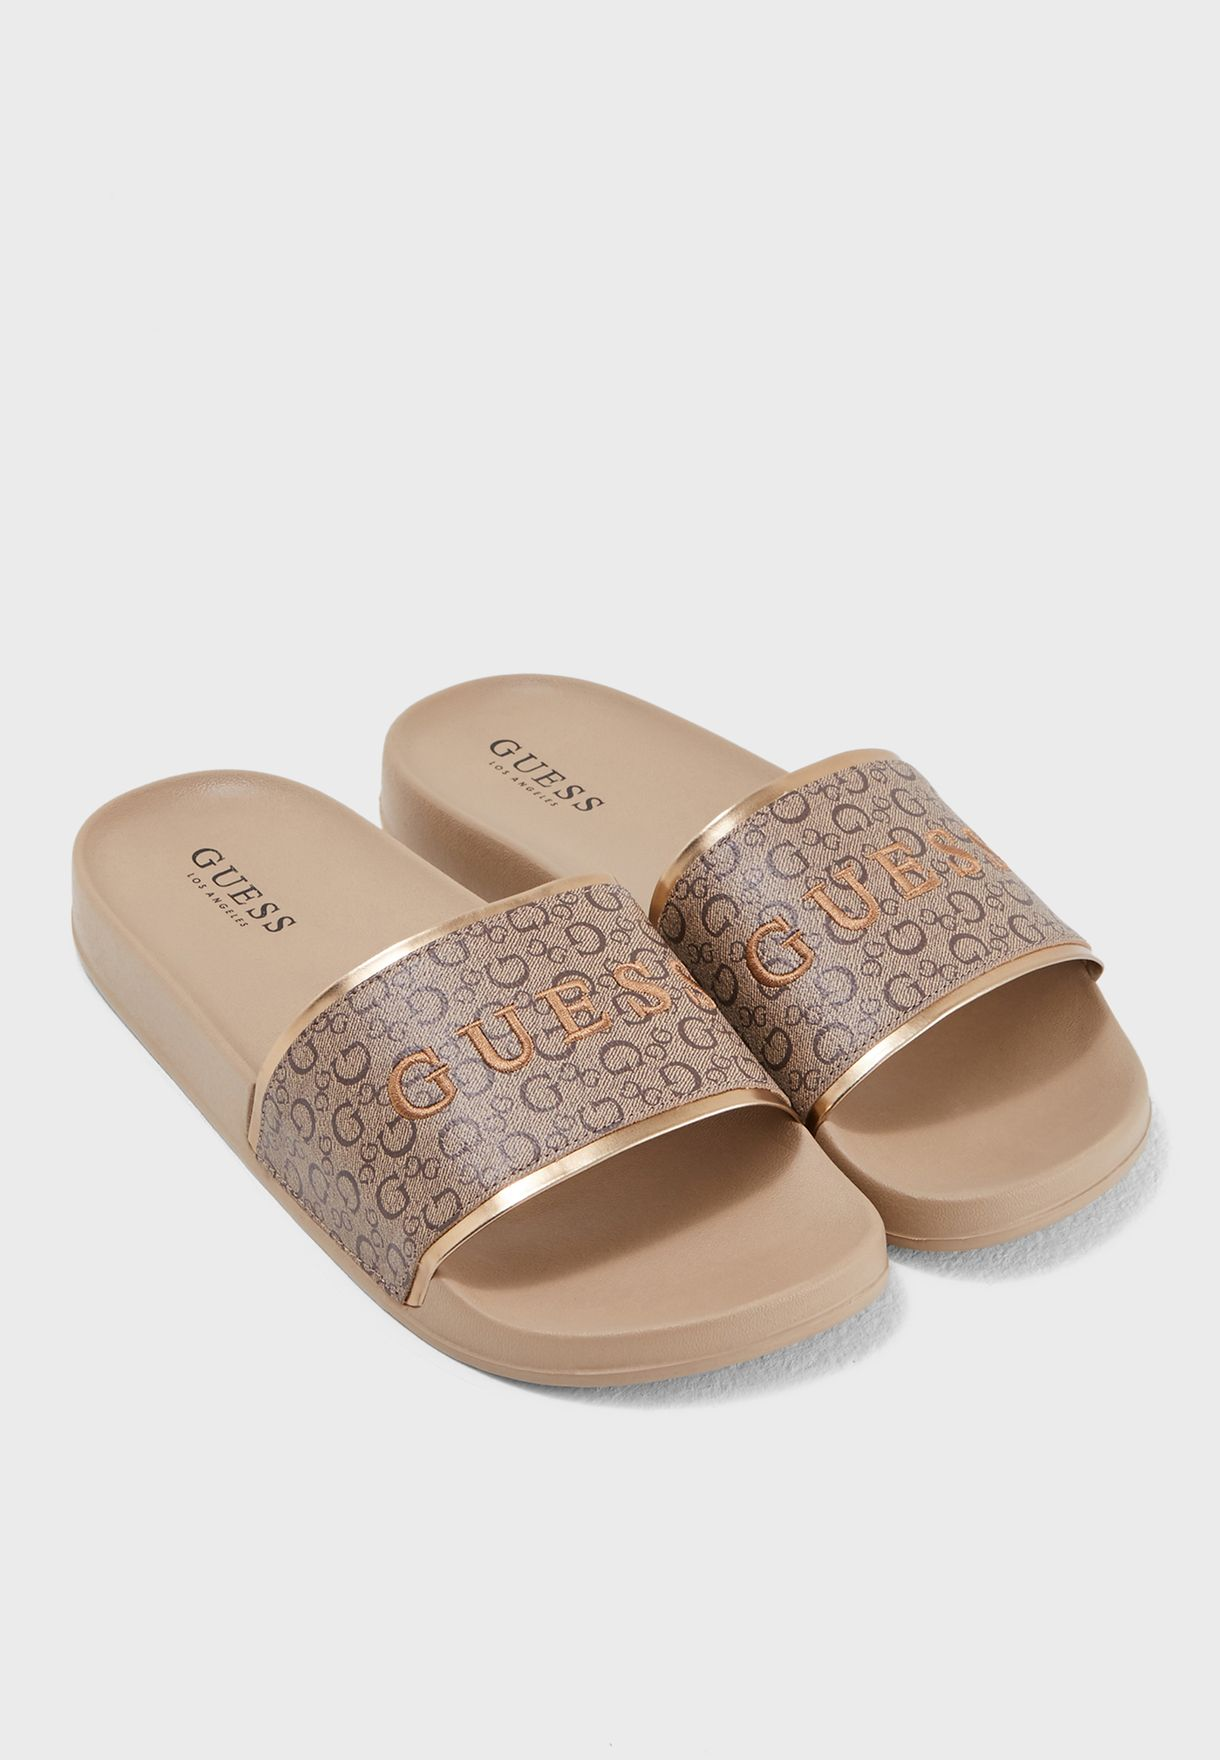 50cc97418bfb Shop Guess beige Isaac Slide Sandal WGDARK-C for Women in UAE ...